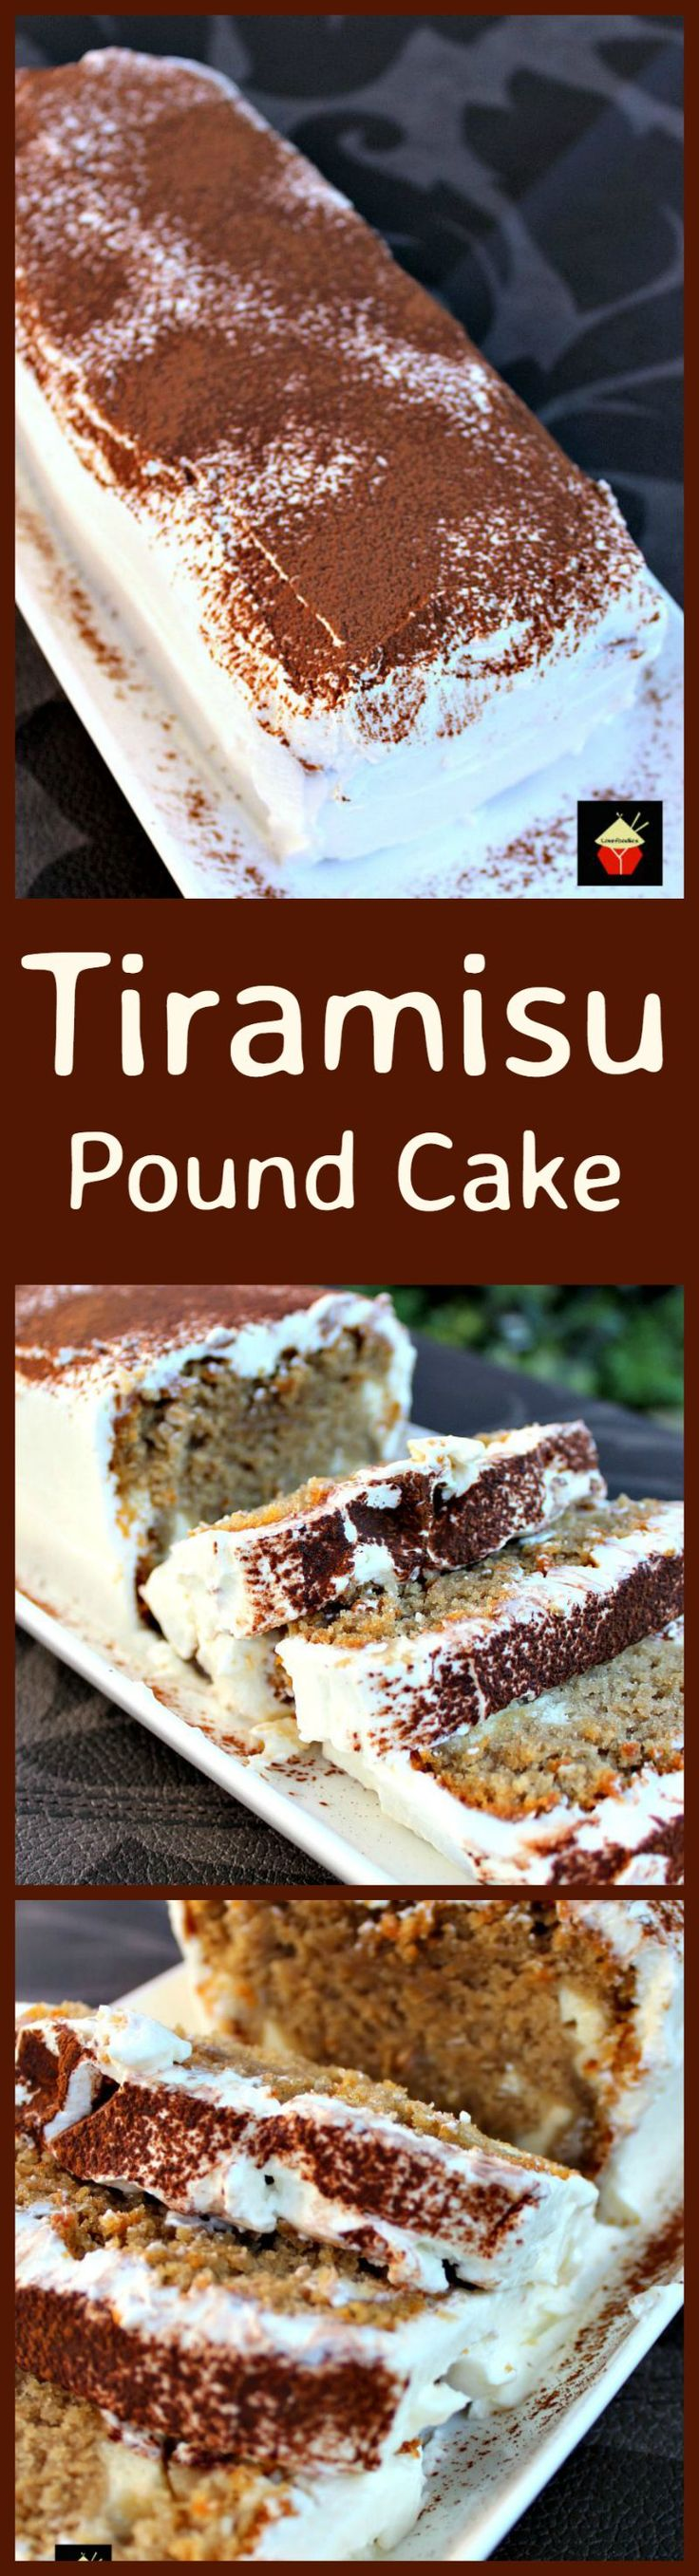 Tiramisu Pound Cake, a soft and delicious pound cake with all the flavors of a Tiramisu! It's even got a mascarpone frosting. This will go fast so be sure to make two! Check out the cream cheese filling too! YUM!